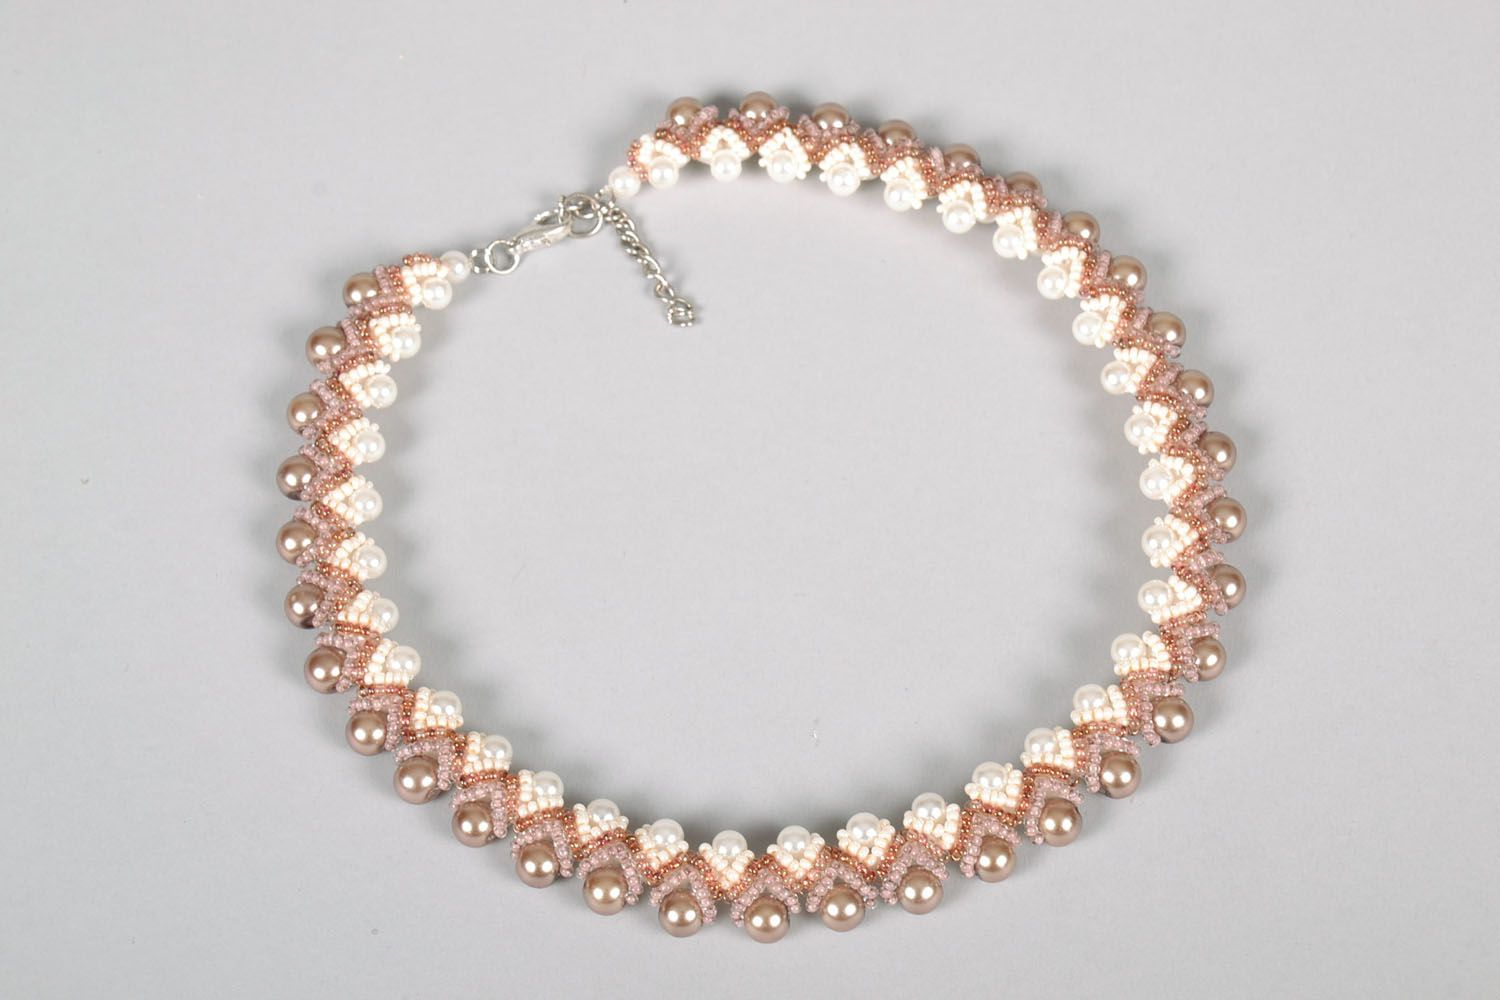 Necklace made of artificial pearl photo 3